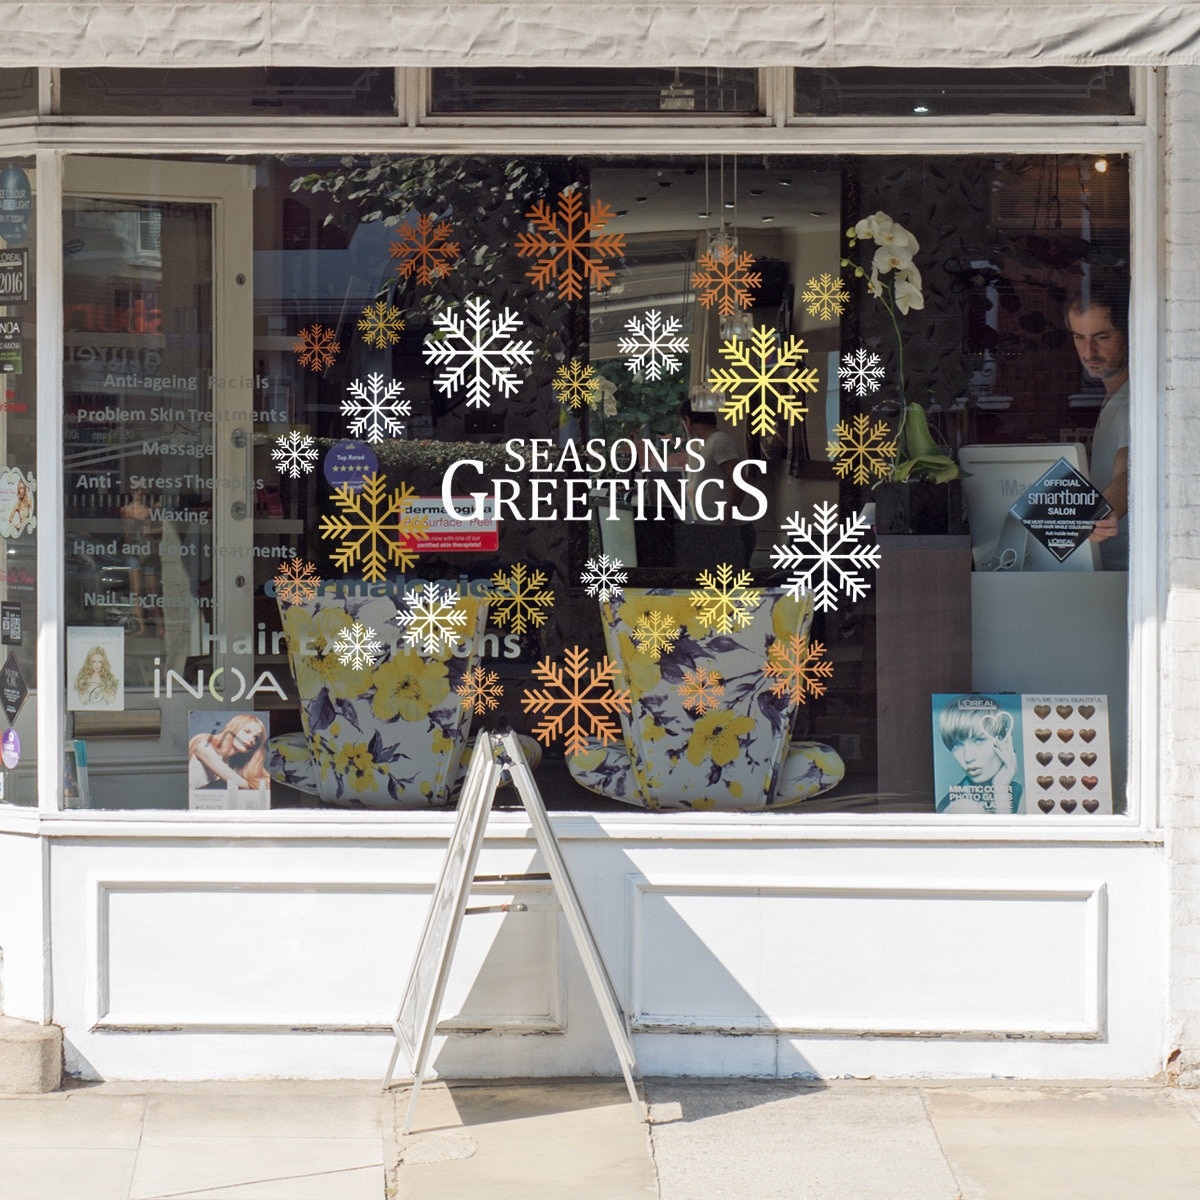 Seasons greetings christmas shop window decal shop retail window display happy holiday seasonal window decoration removable vinyl